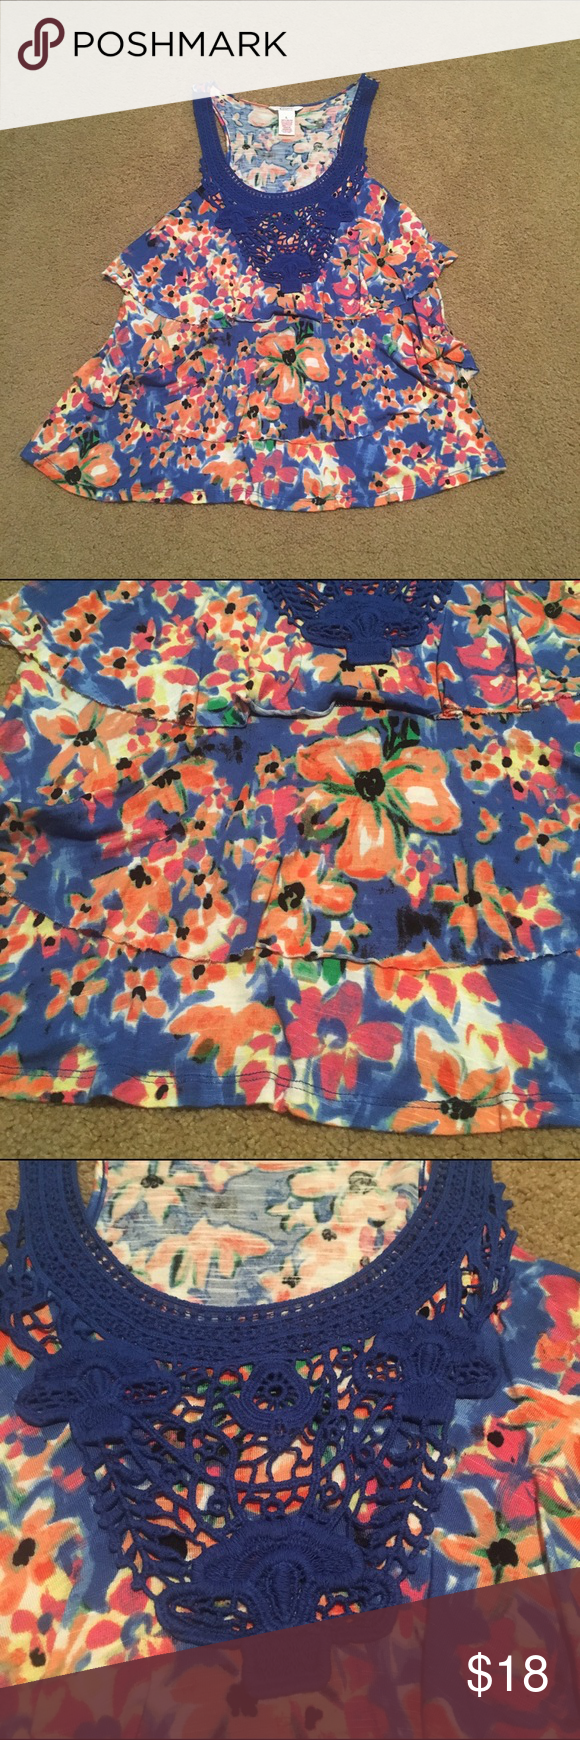 Blue floral lace tank top Blue floral lace tank top. It does have multiple layers as pictured. Very beautiful! Pair it with a cardigan and dress pants or just with jeans and heels! 👠👖maybe worn once so still in great condition! Candie's Tops